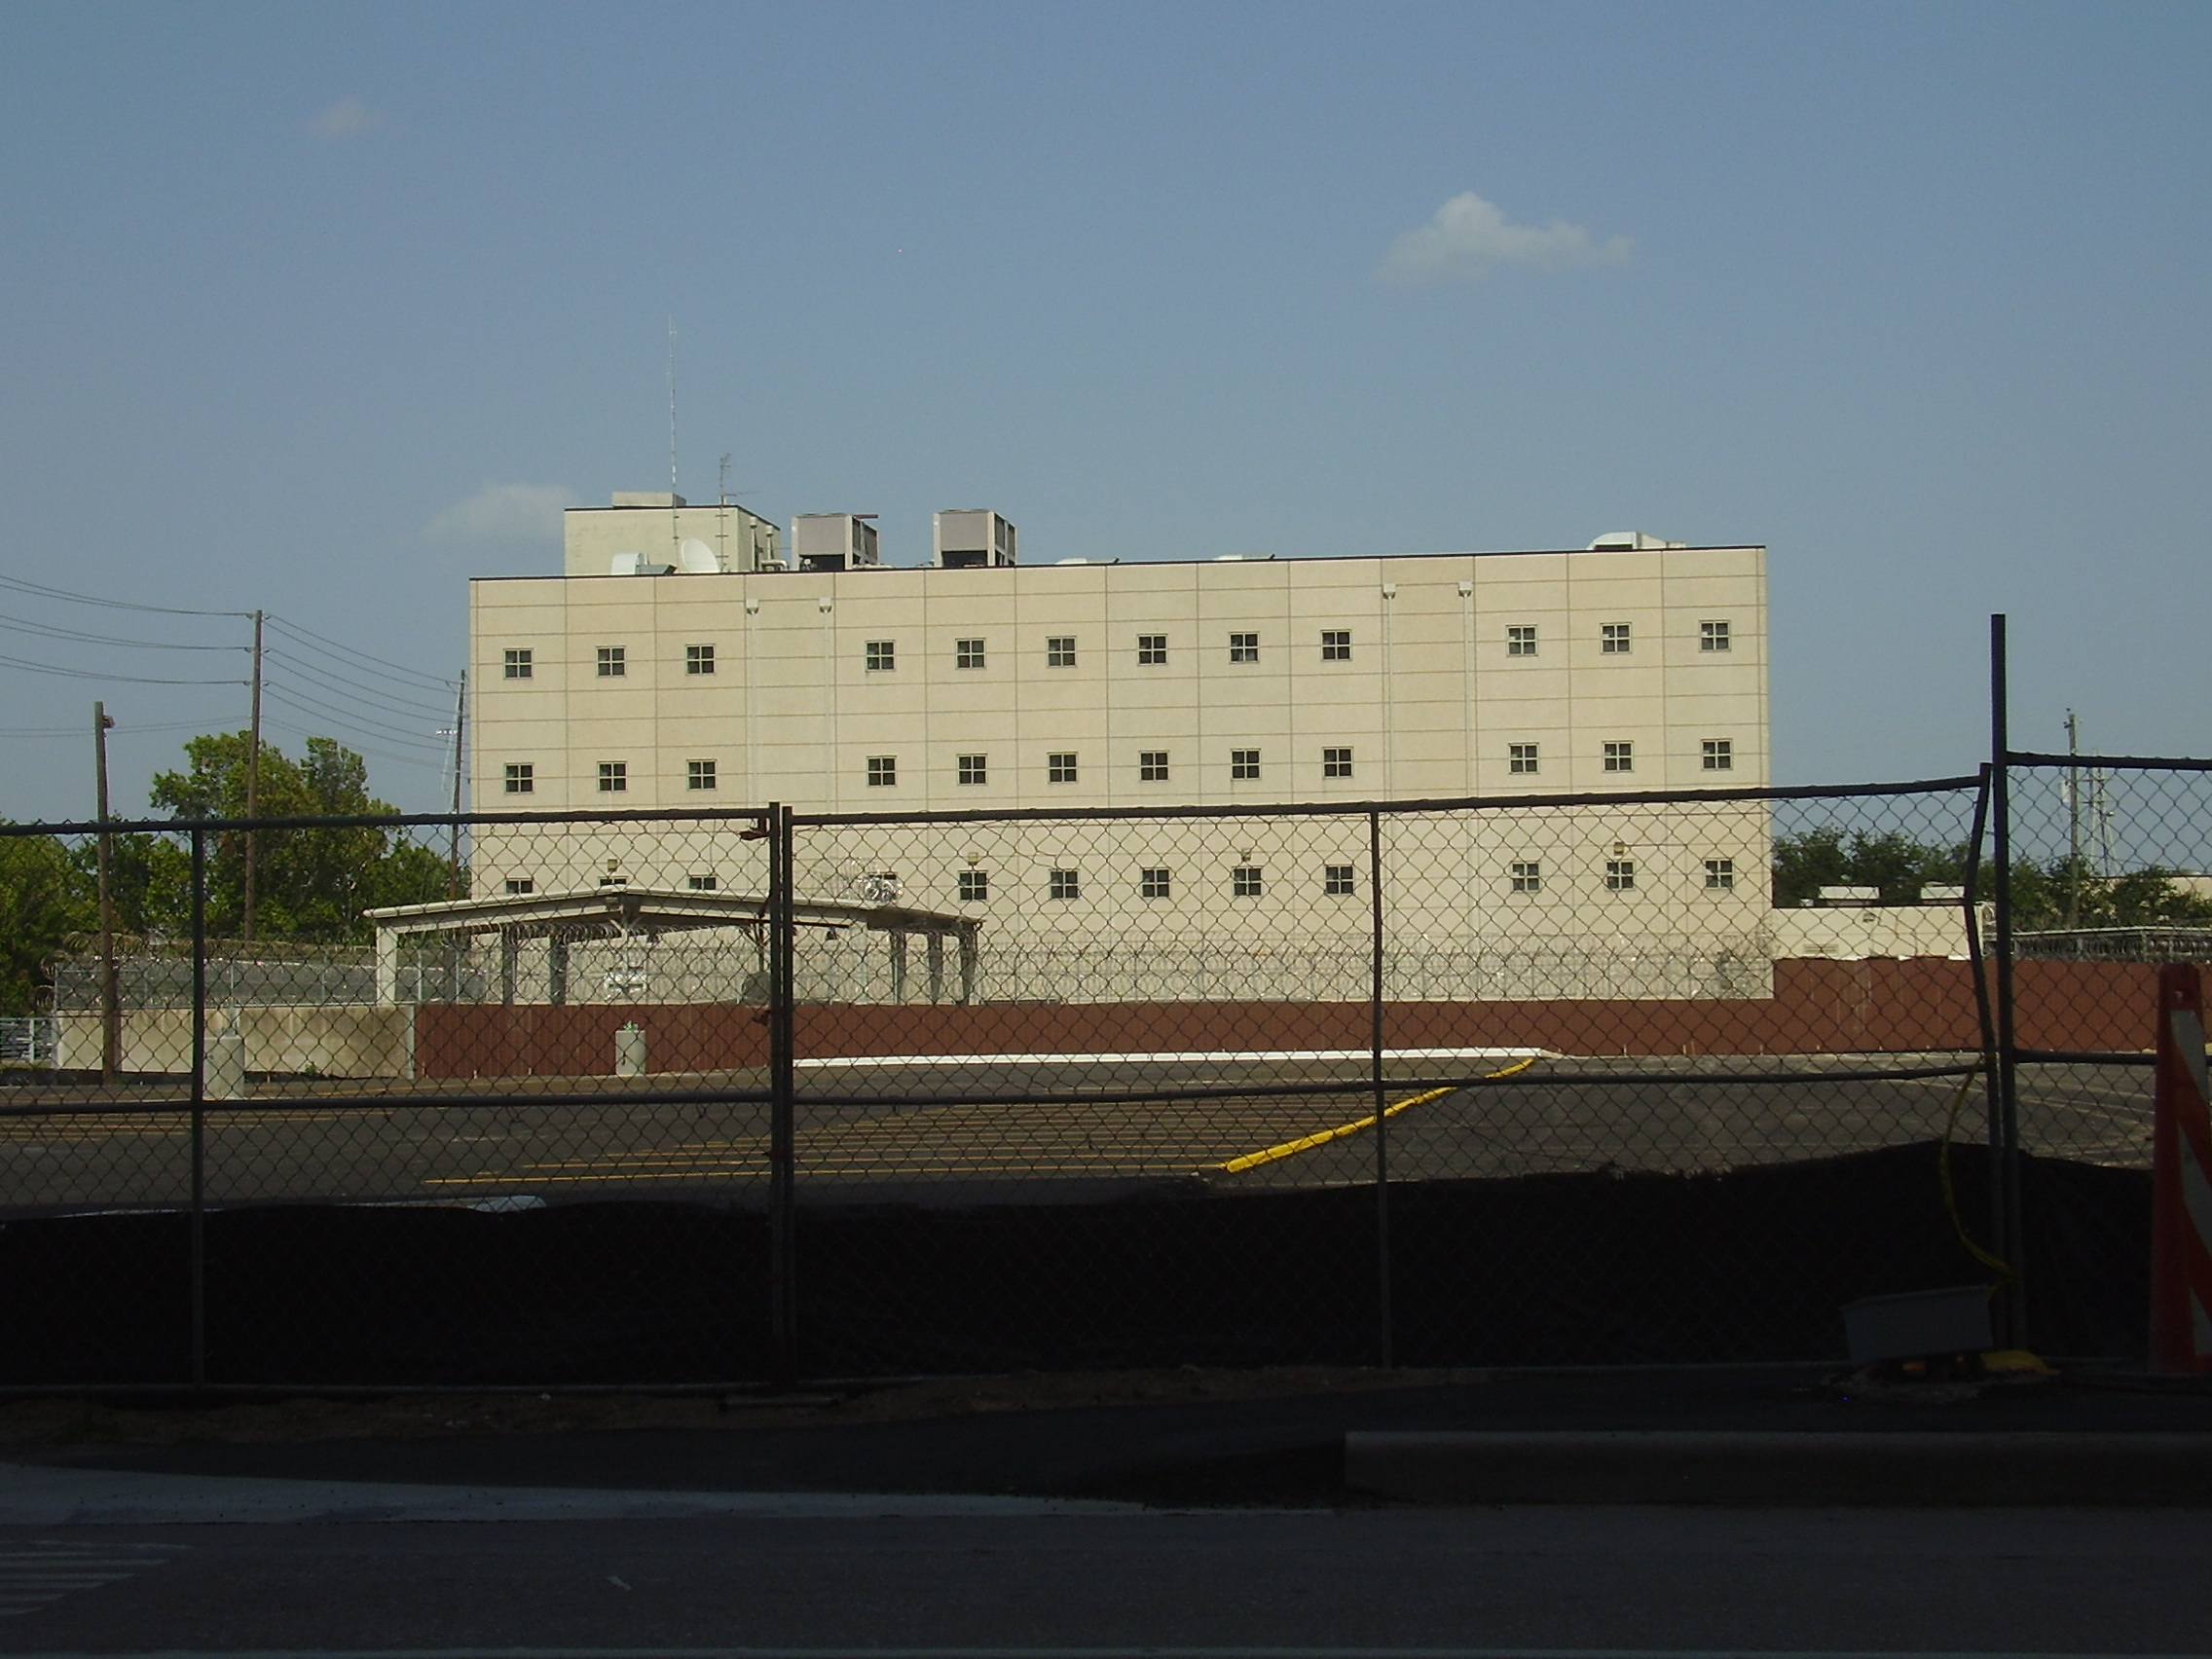 Joe Kegans State Jail - Wikipedia